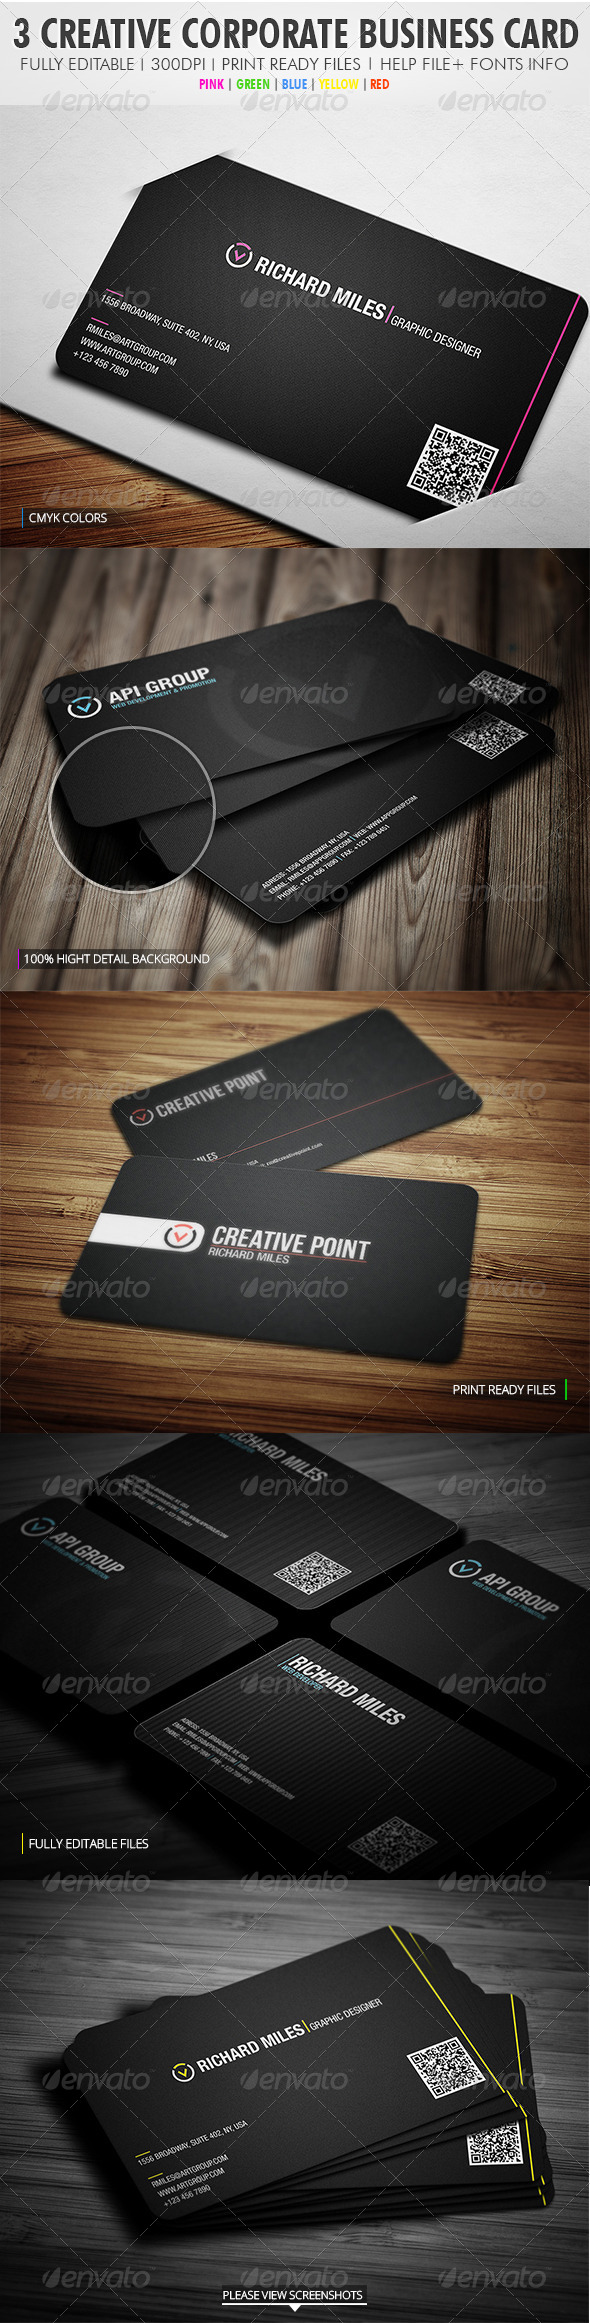 3 In 1 Creative Corporate Bundle - Corporate Business Cards